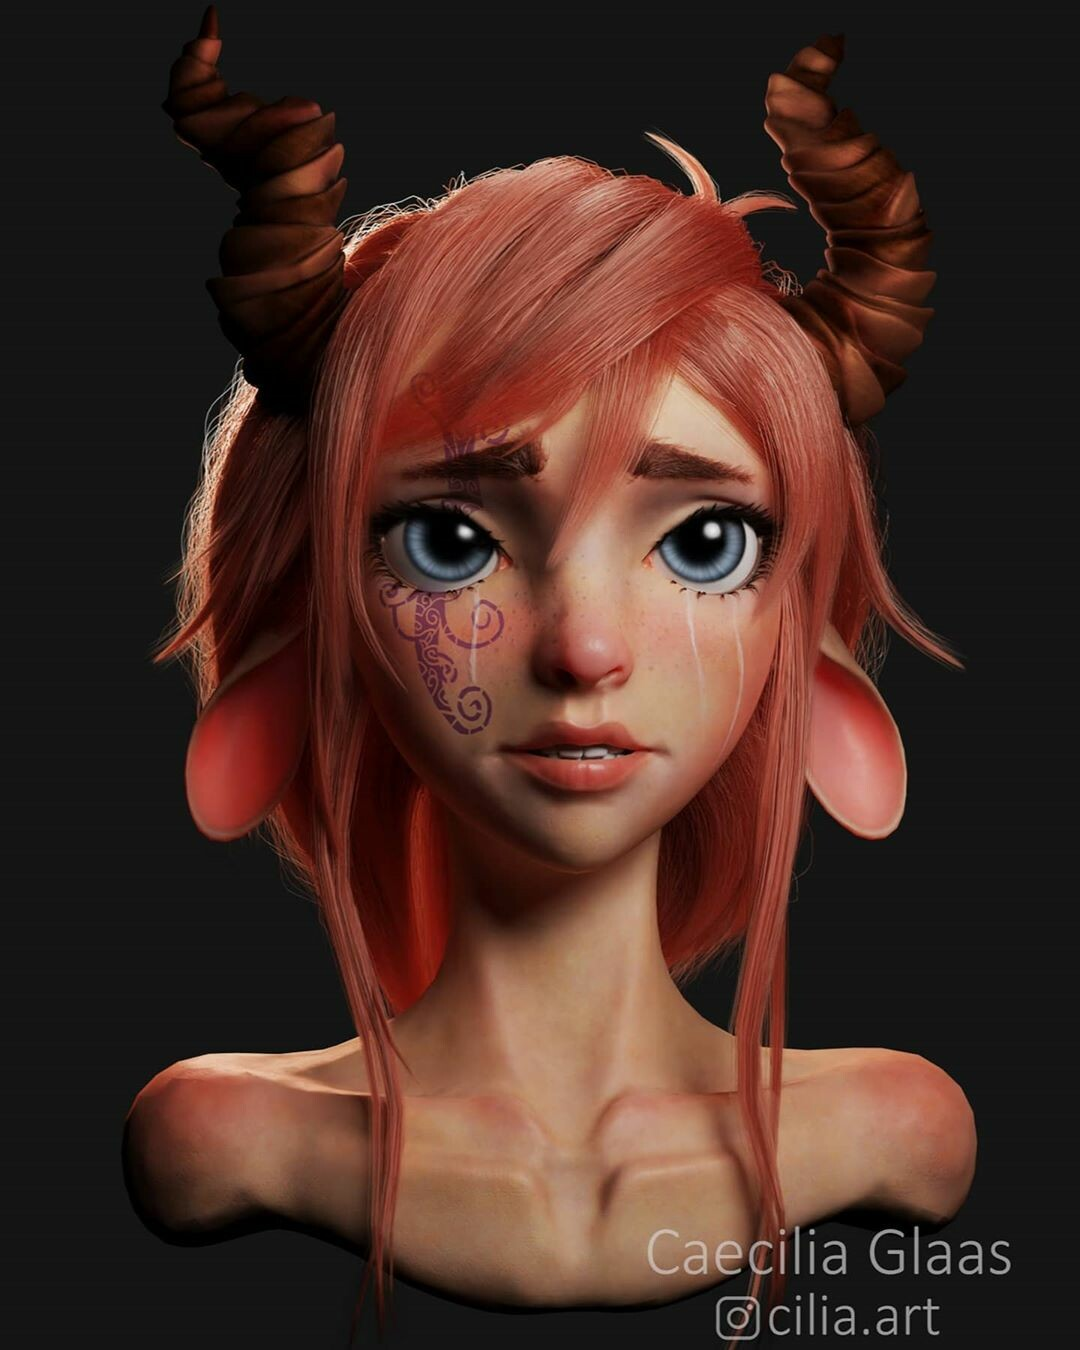 Fanart - 3D model created by Caecilia Glaas